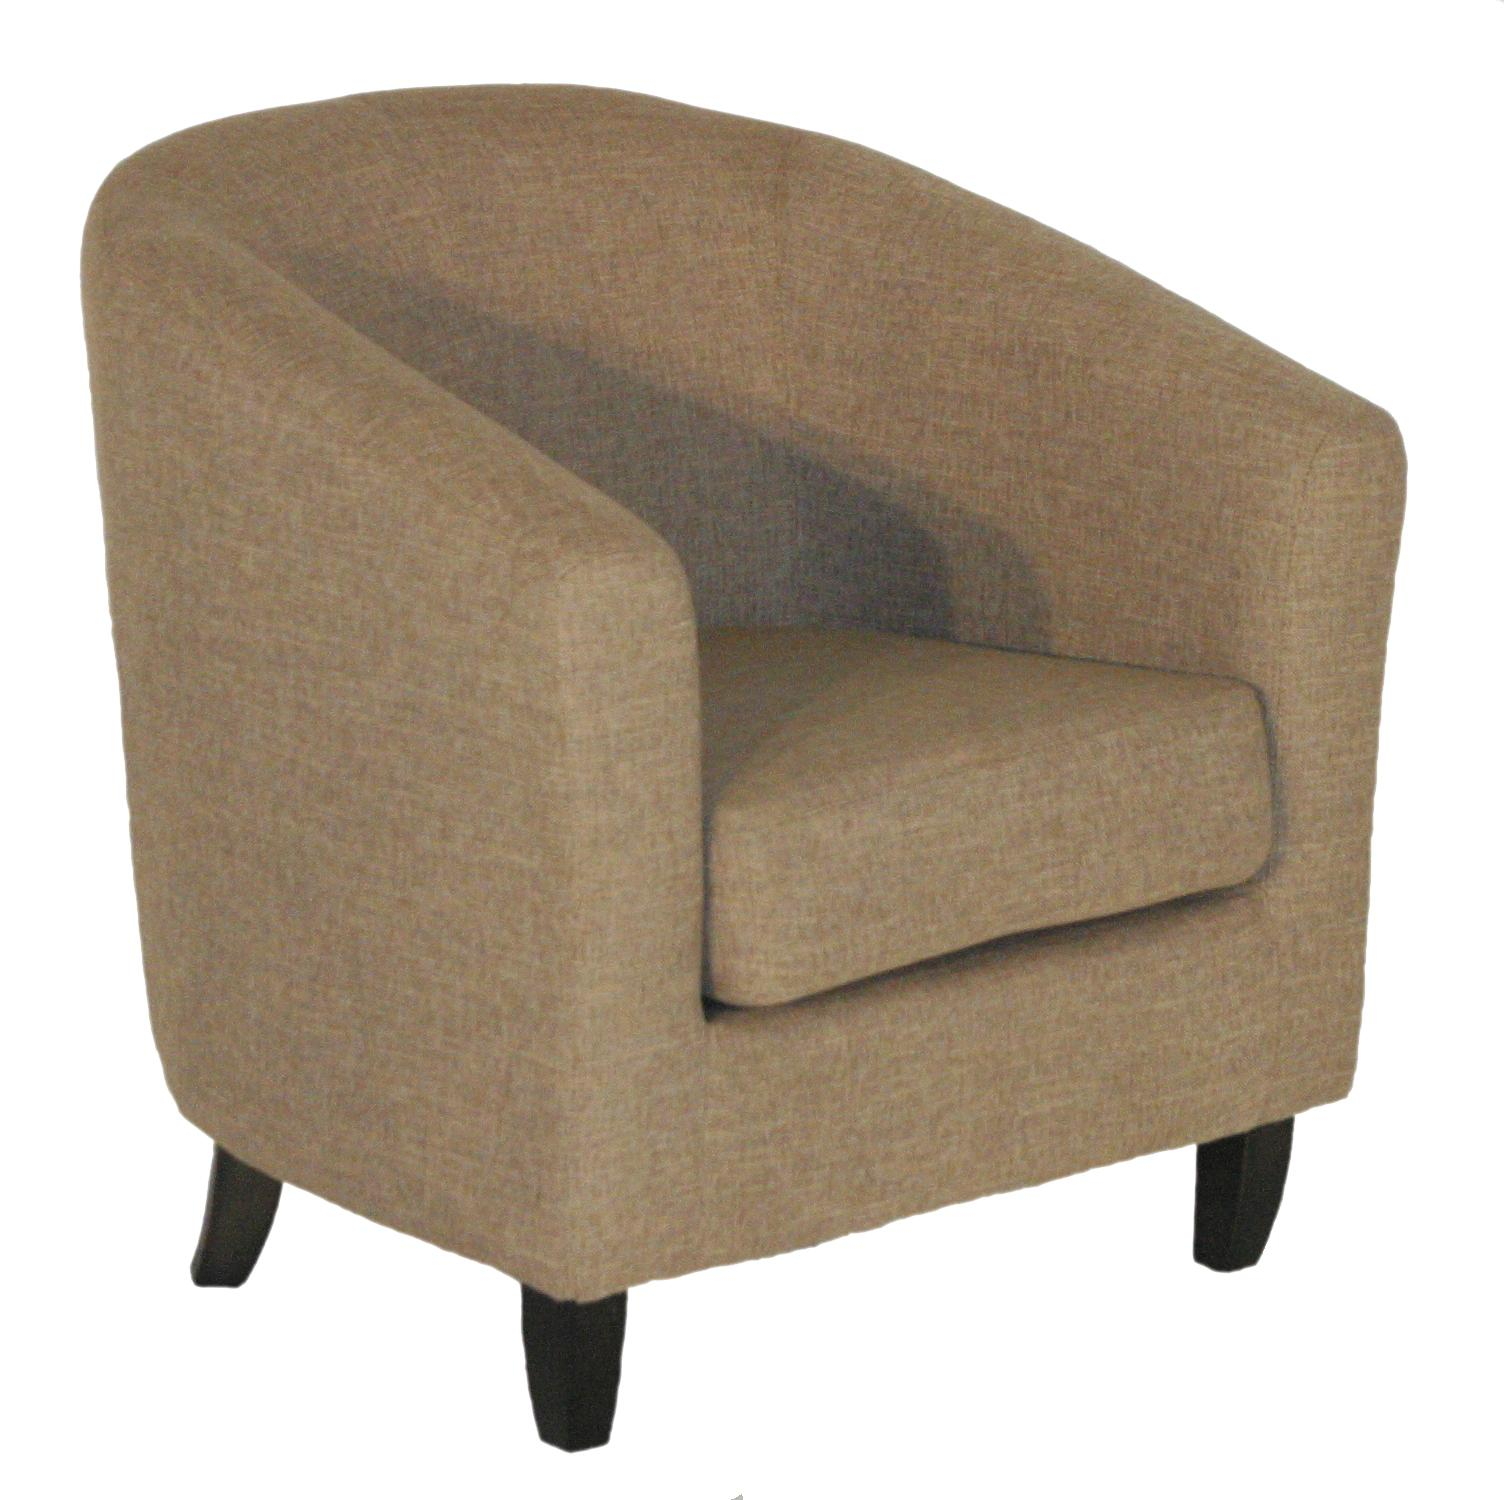 BFW Lifestyle A-52 Contemporary Accent Chair - Item Number: A-52-C292